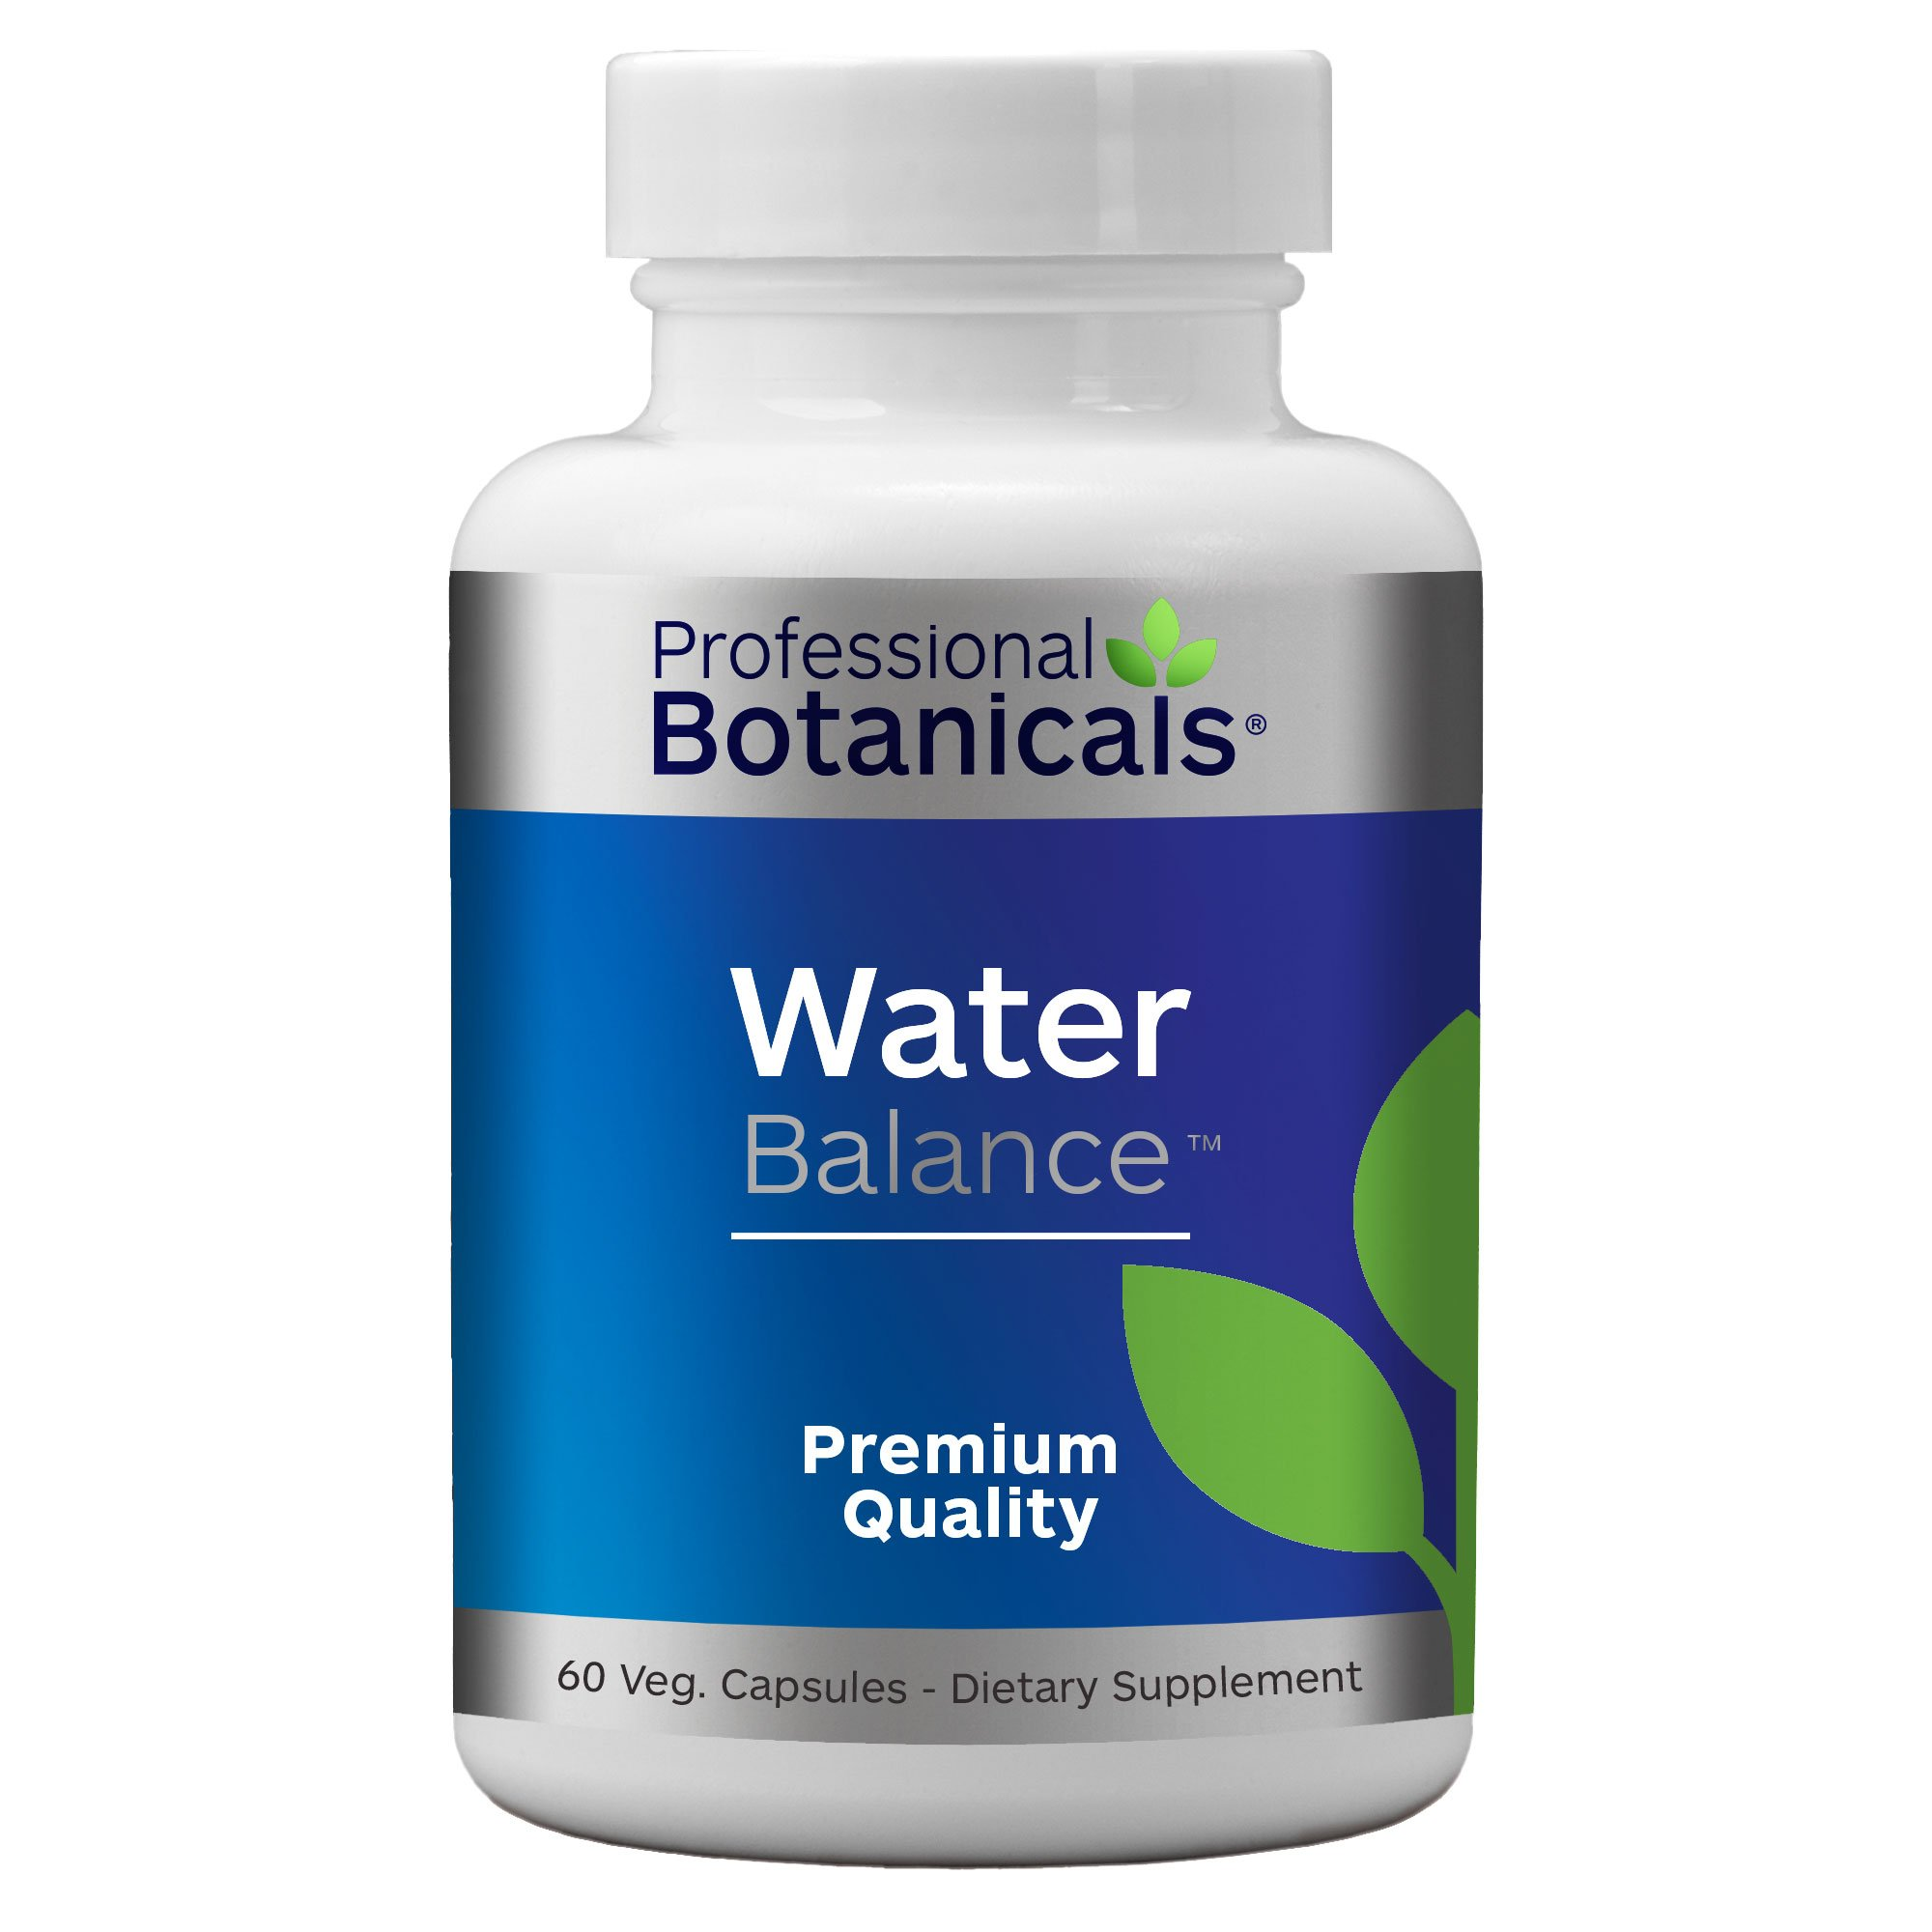 Professional Botanicals Water Balance - Supports Health Bladder and Kidney Functions - 60 Vegetarian Capsules by Professional Botanicals